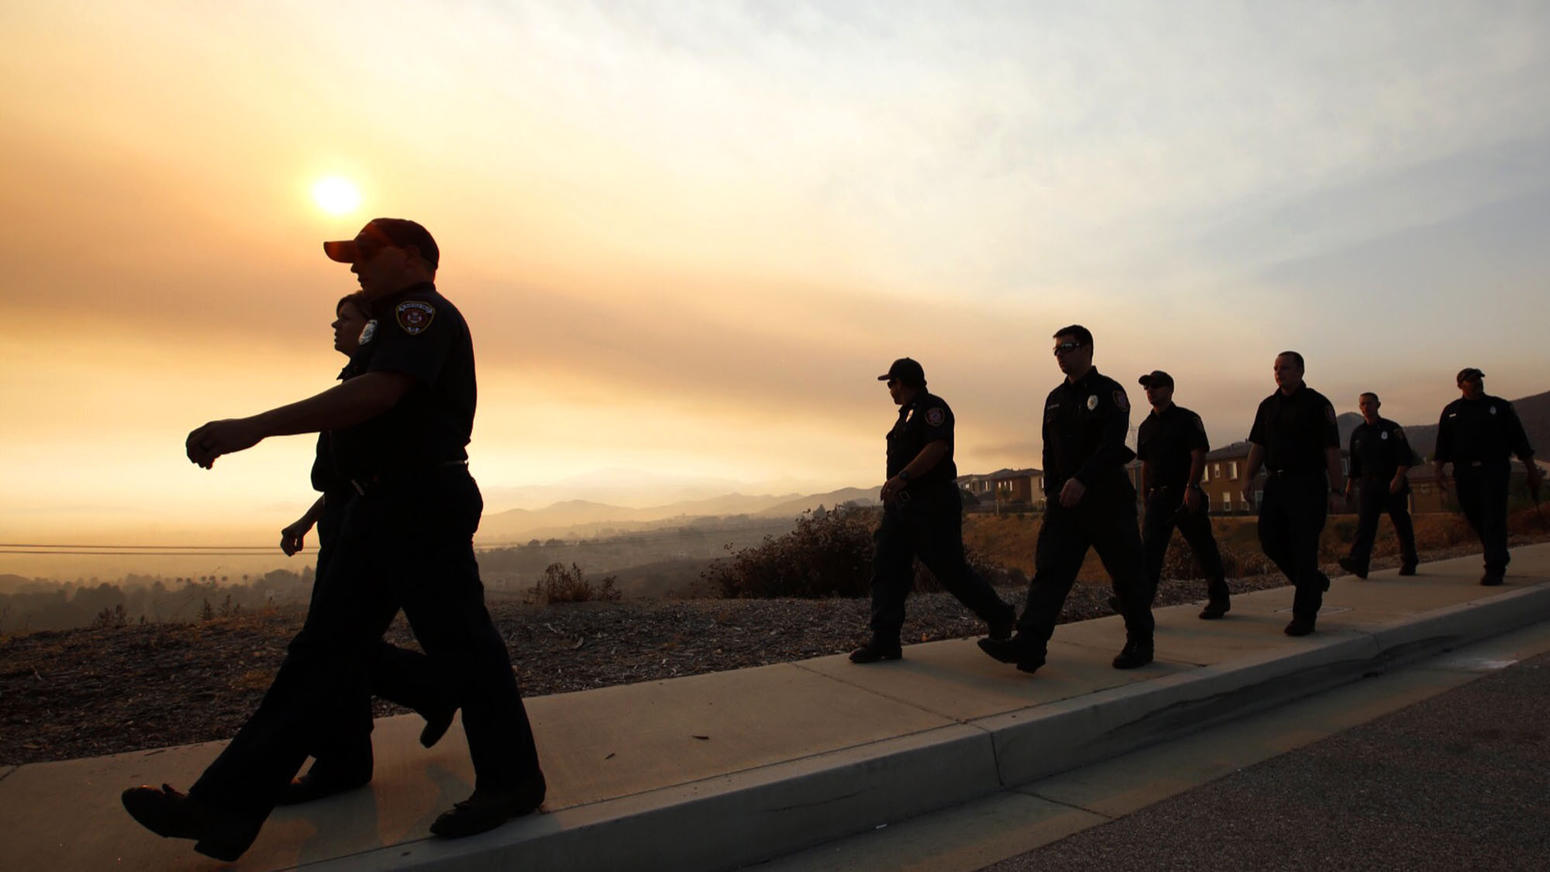 Nearly 3,000 firefighters converge on the Sand fire command center at Golden Valley High School in Santa Clarita for deployment orders on Monday morning. (Al Seib / Los Angeles Times)